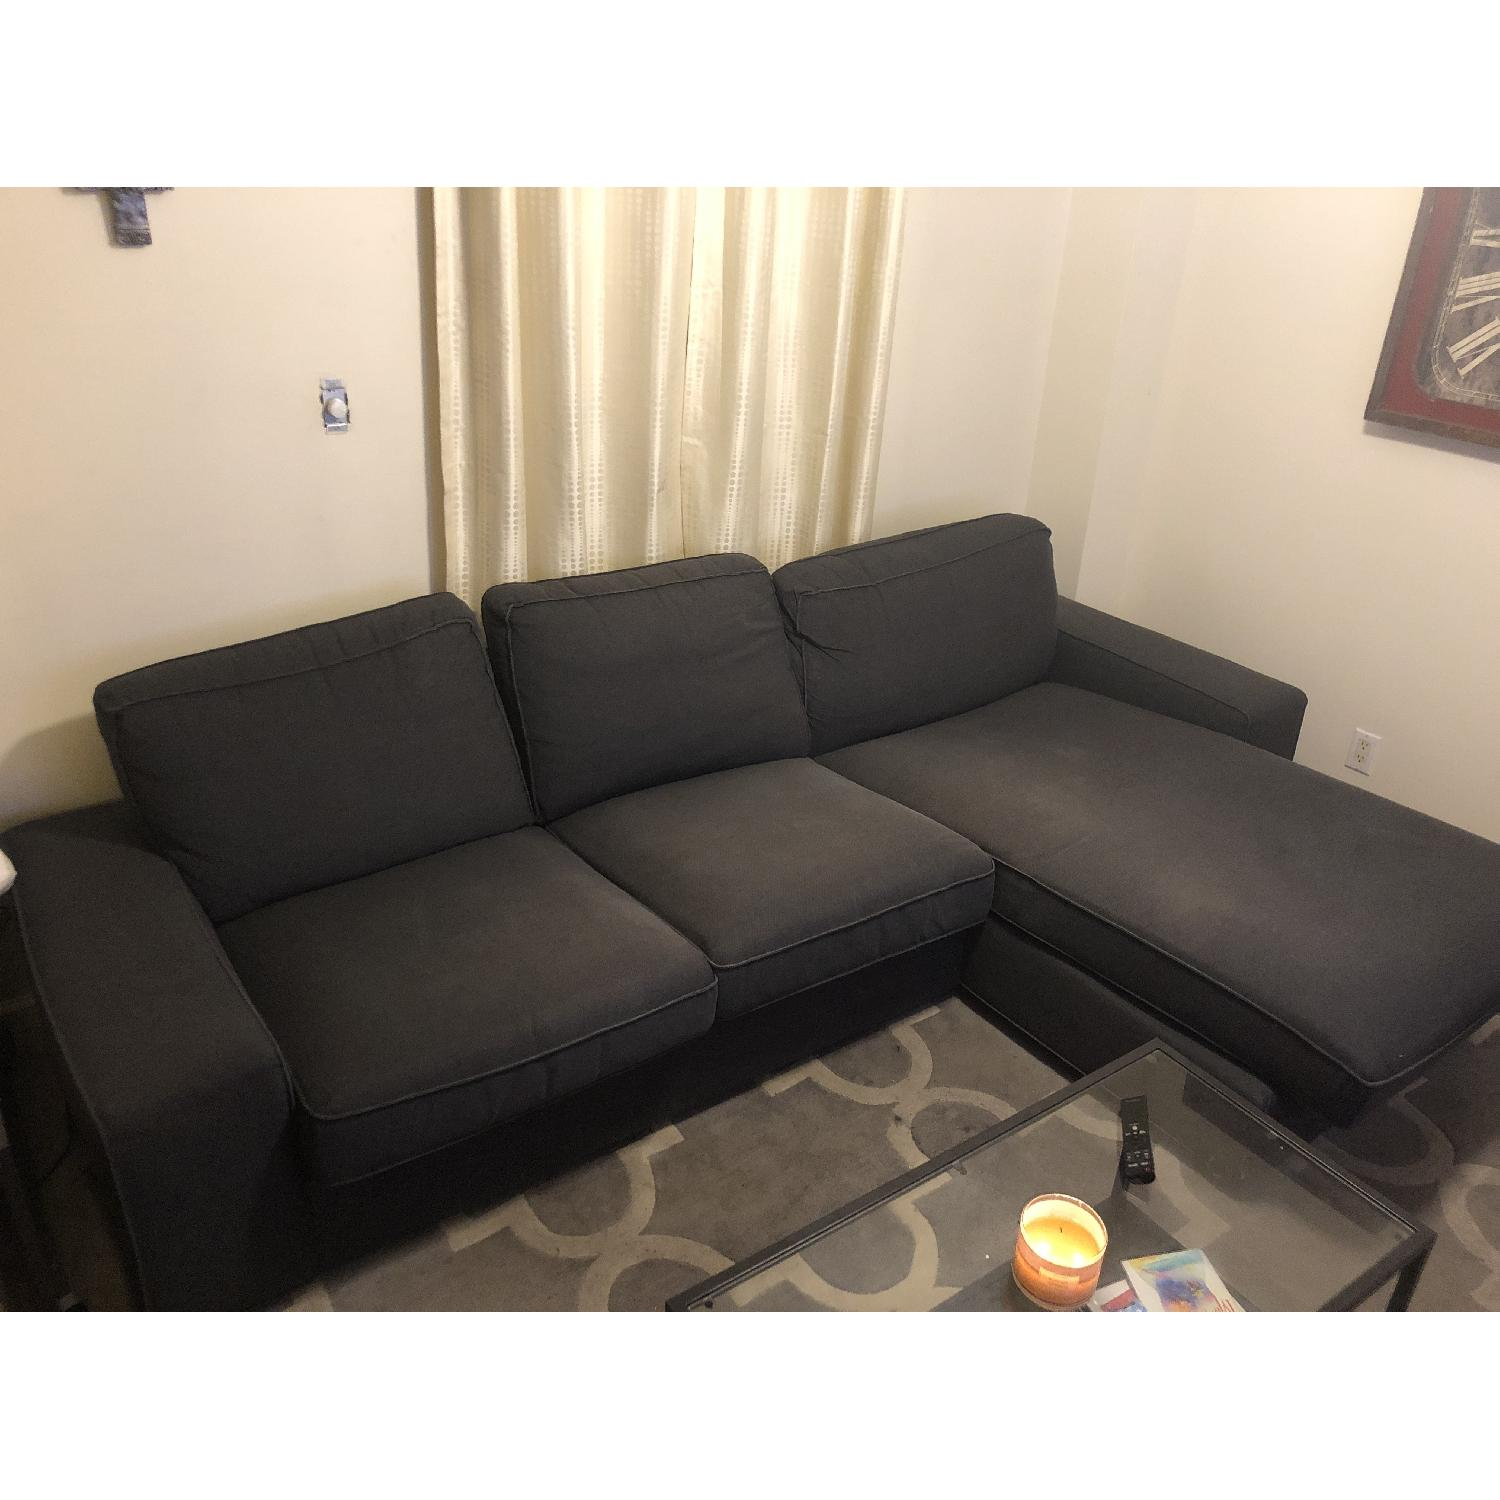 ... Ikea Kivik Sectional Sofa W/ Chaise In Dark Blue/Grey 0 ...